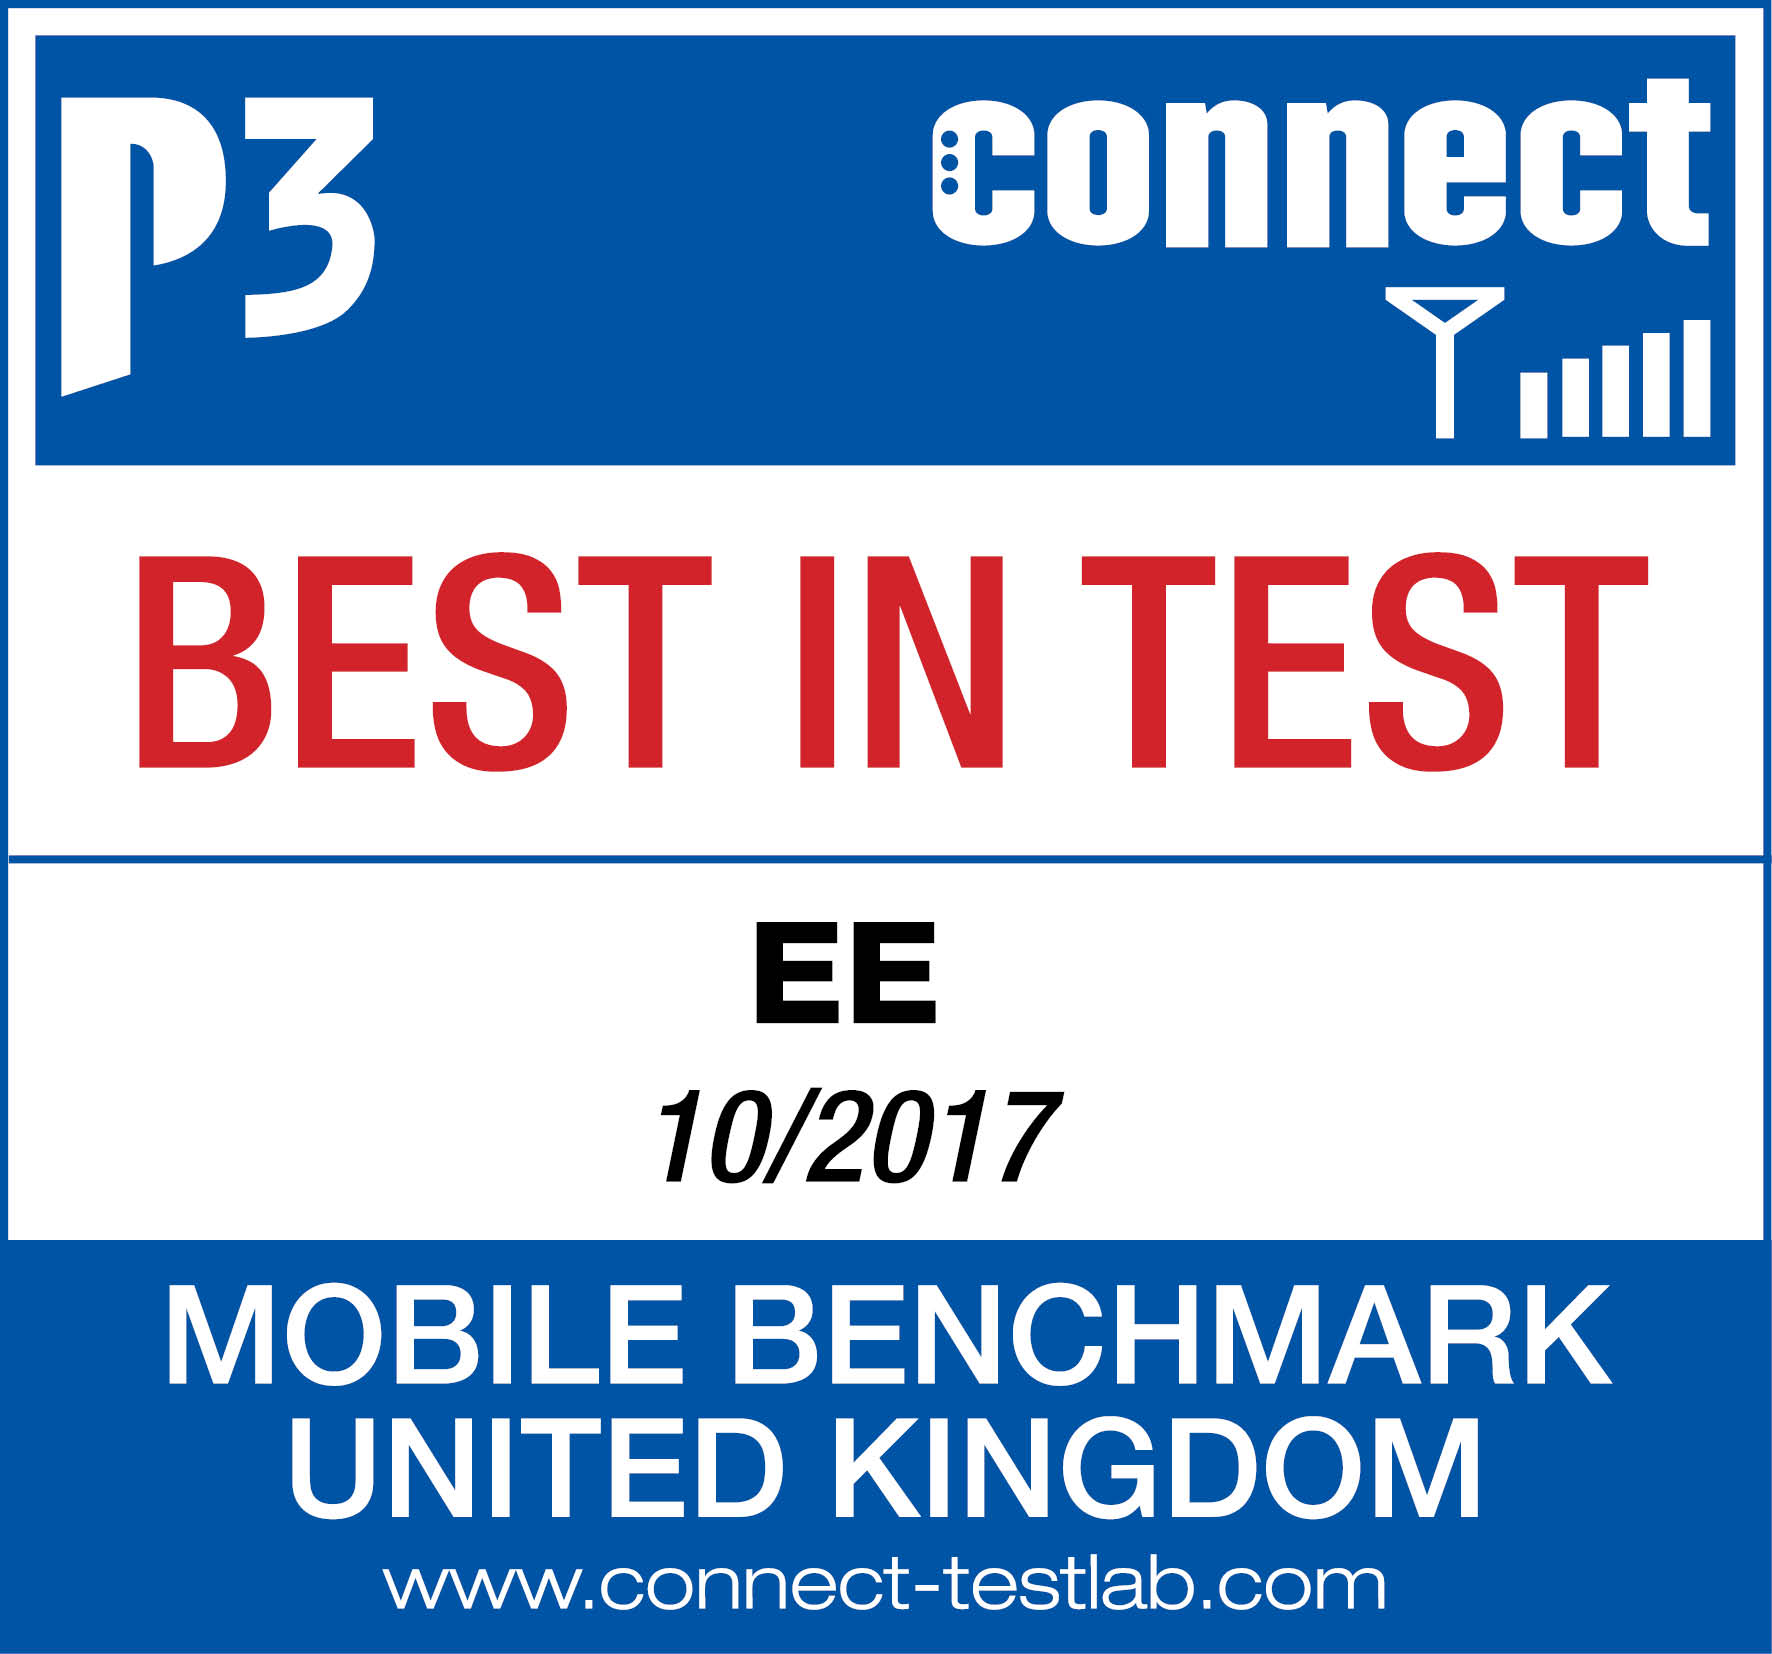 testseal_connect_bestintest_UK_EE.jpg